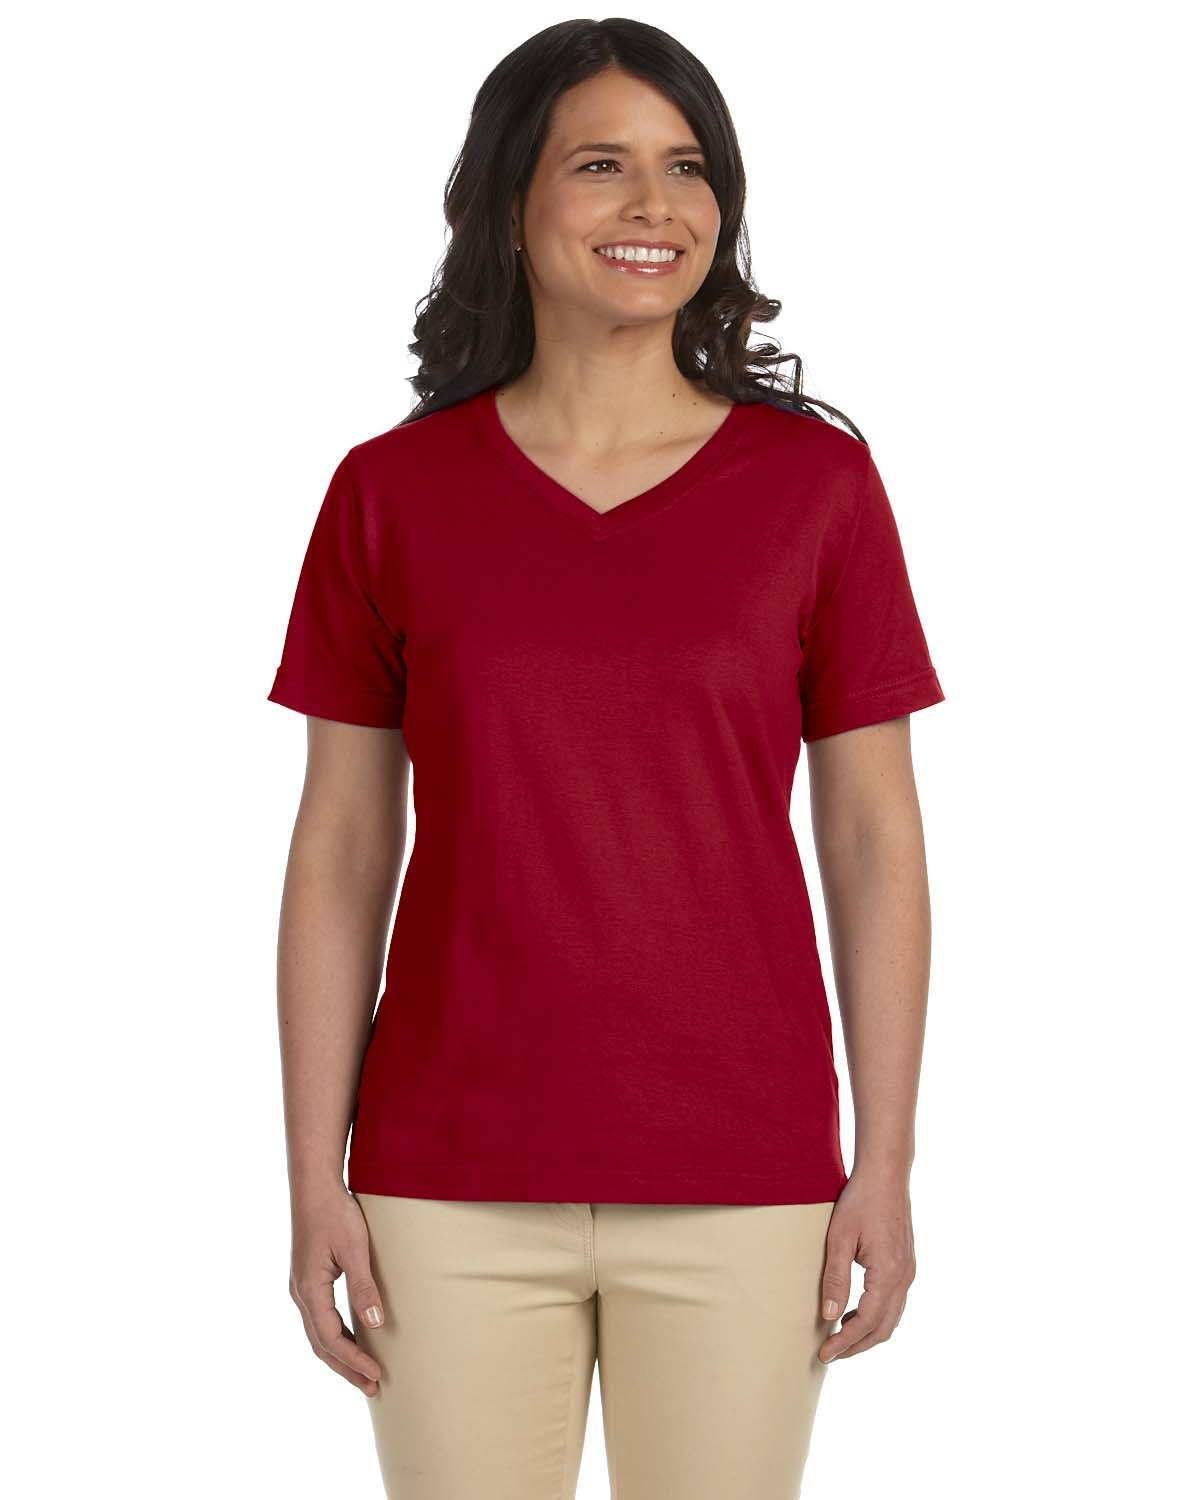 LAT Ladies' Premium Jersey V-Neck T-Shirt GARNET